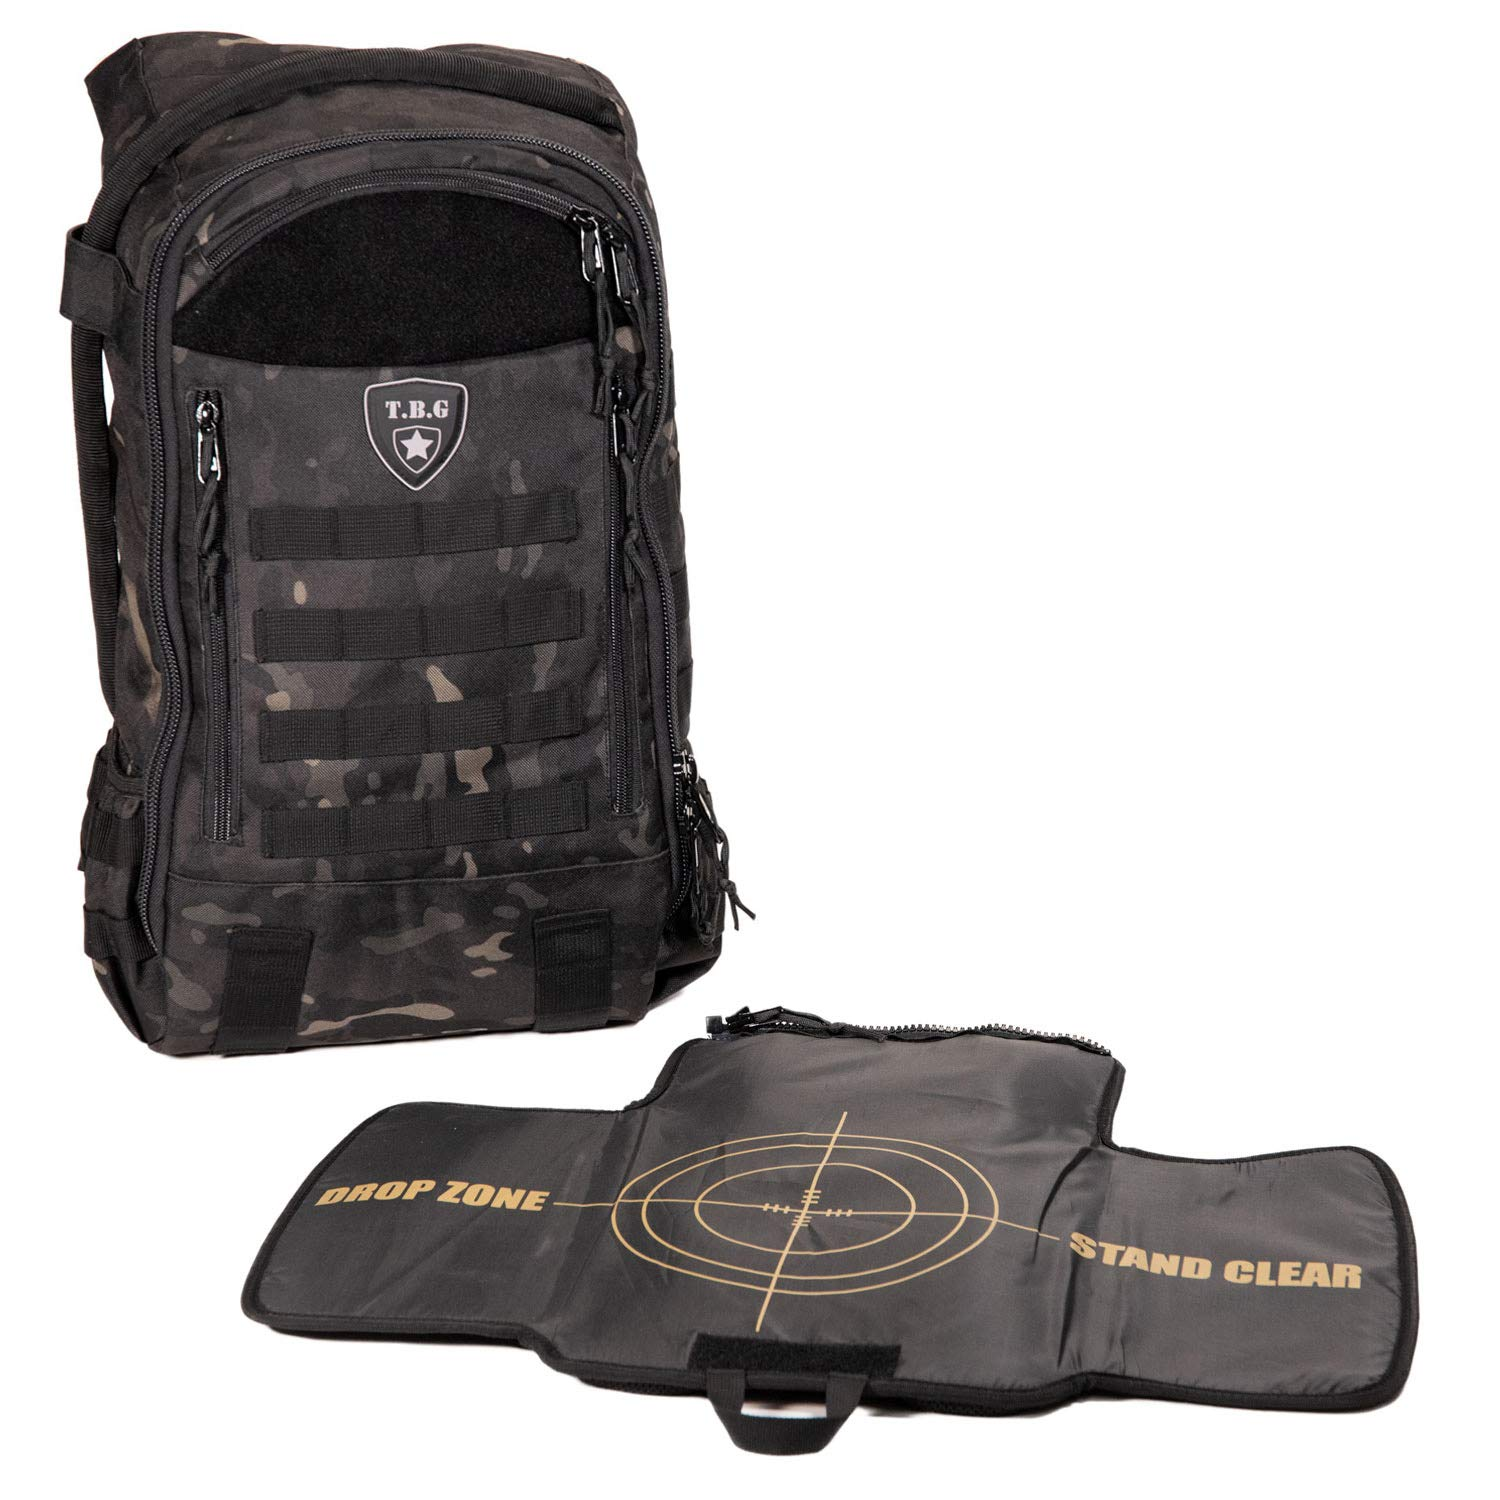 63dabffa3397 Amazon.com   Tactical Baby Gear Daypack 3.0 Tactical Diaper Bag Backpack  and Changing Mat (Black Camo)   Baby